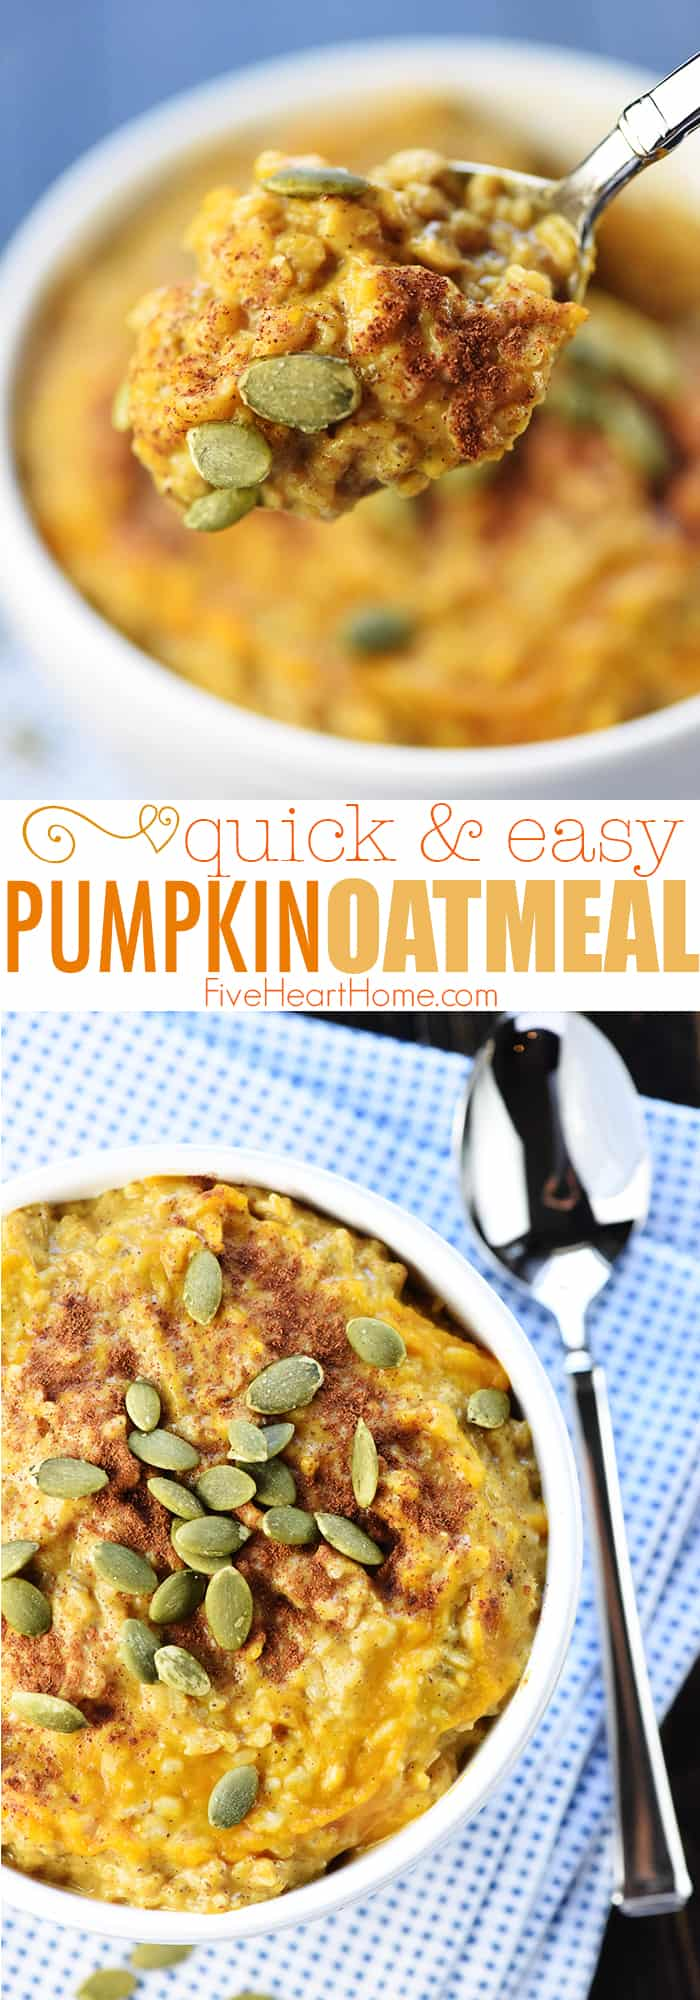 Quick & Easy Pumpkin Oatmeal ~ a healthy, yummy fall breakfast recipe loaded with pumpkin, almond butter, chia seeds, and cinnamon & spices, sweetened with a touch of maple syrup, and topped with roasted pumpkin seeds! | FiveHeartHome.com